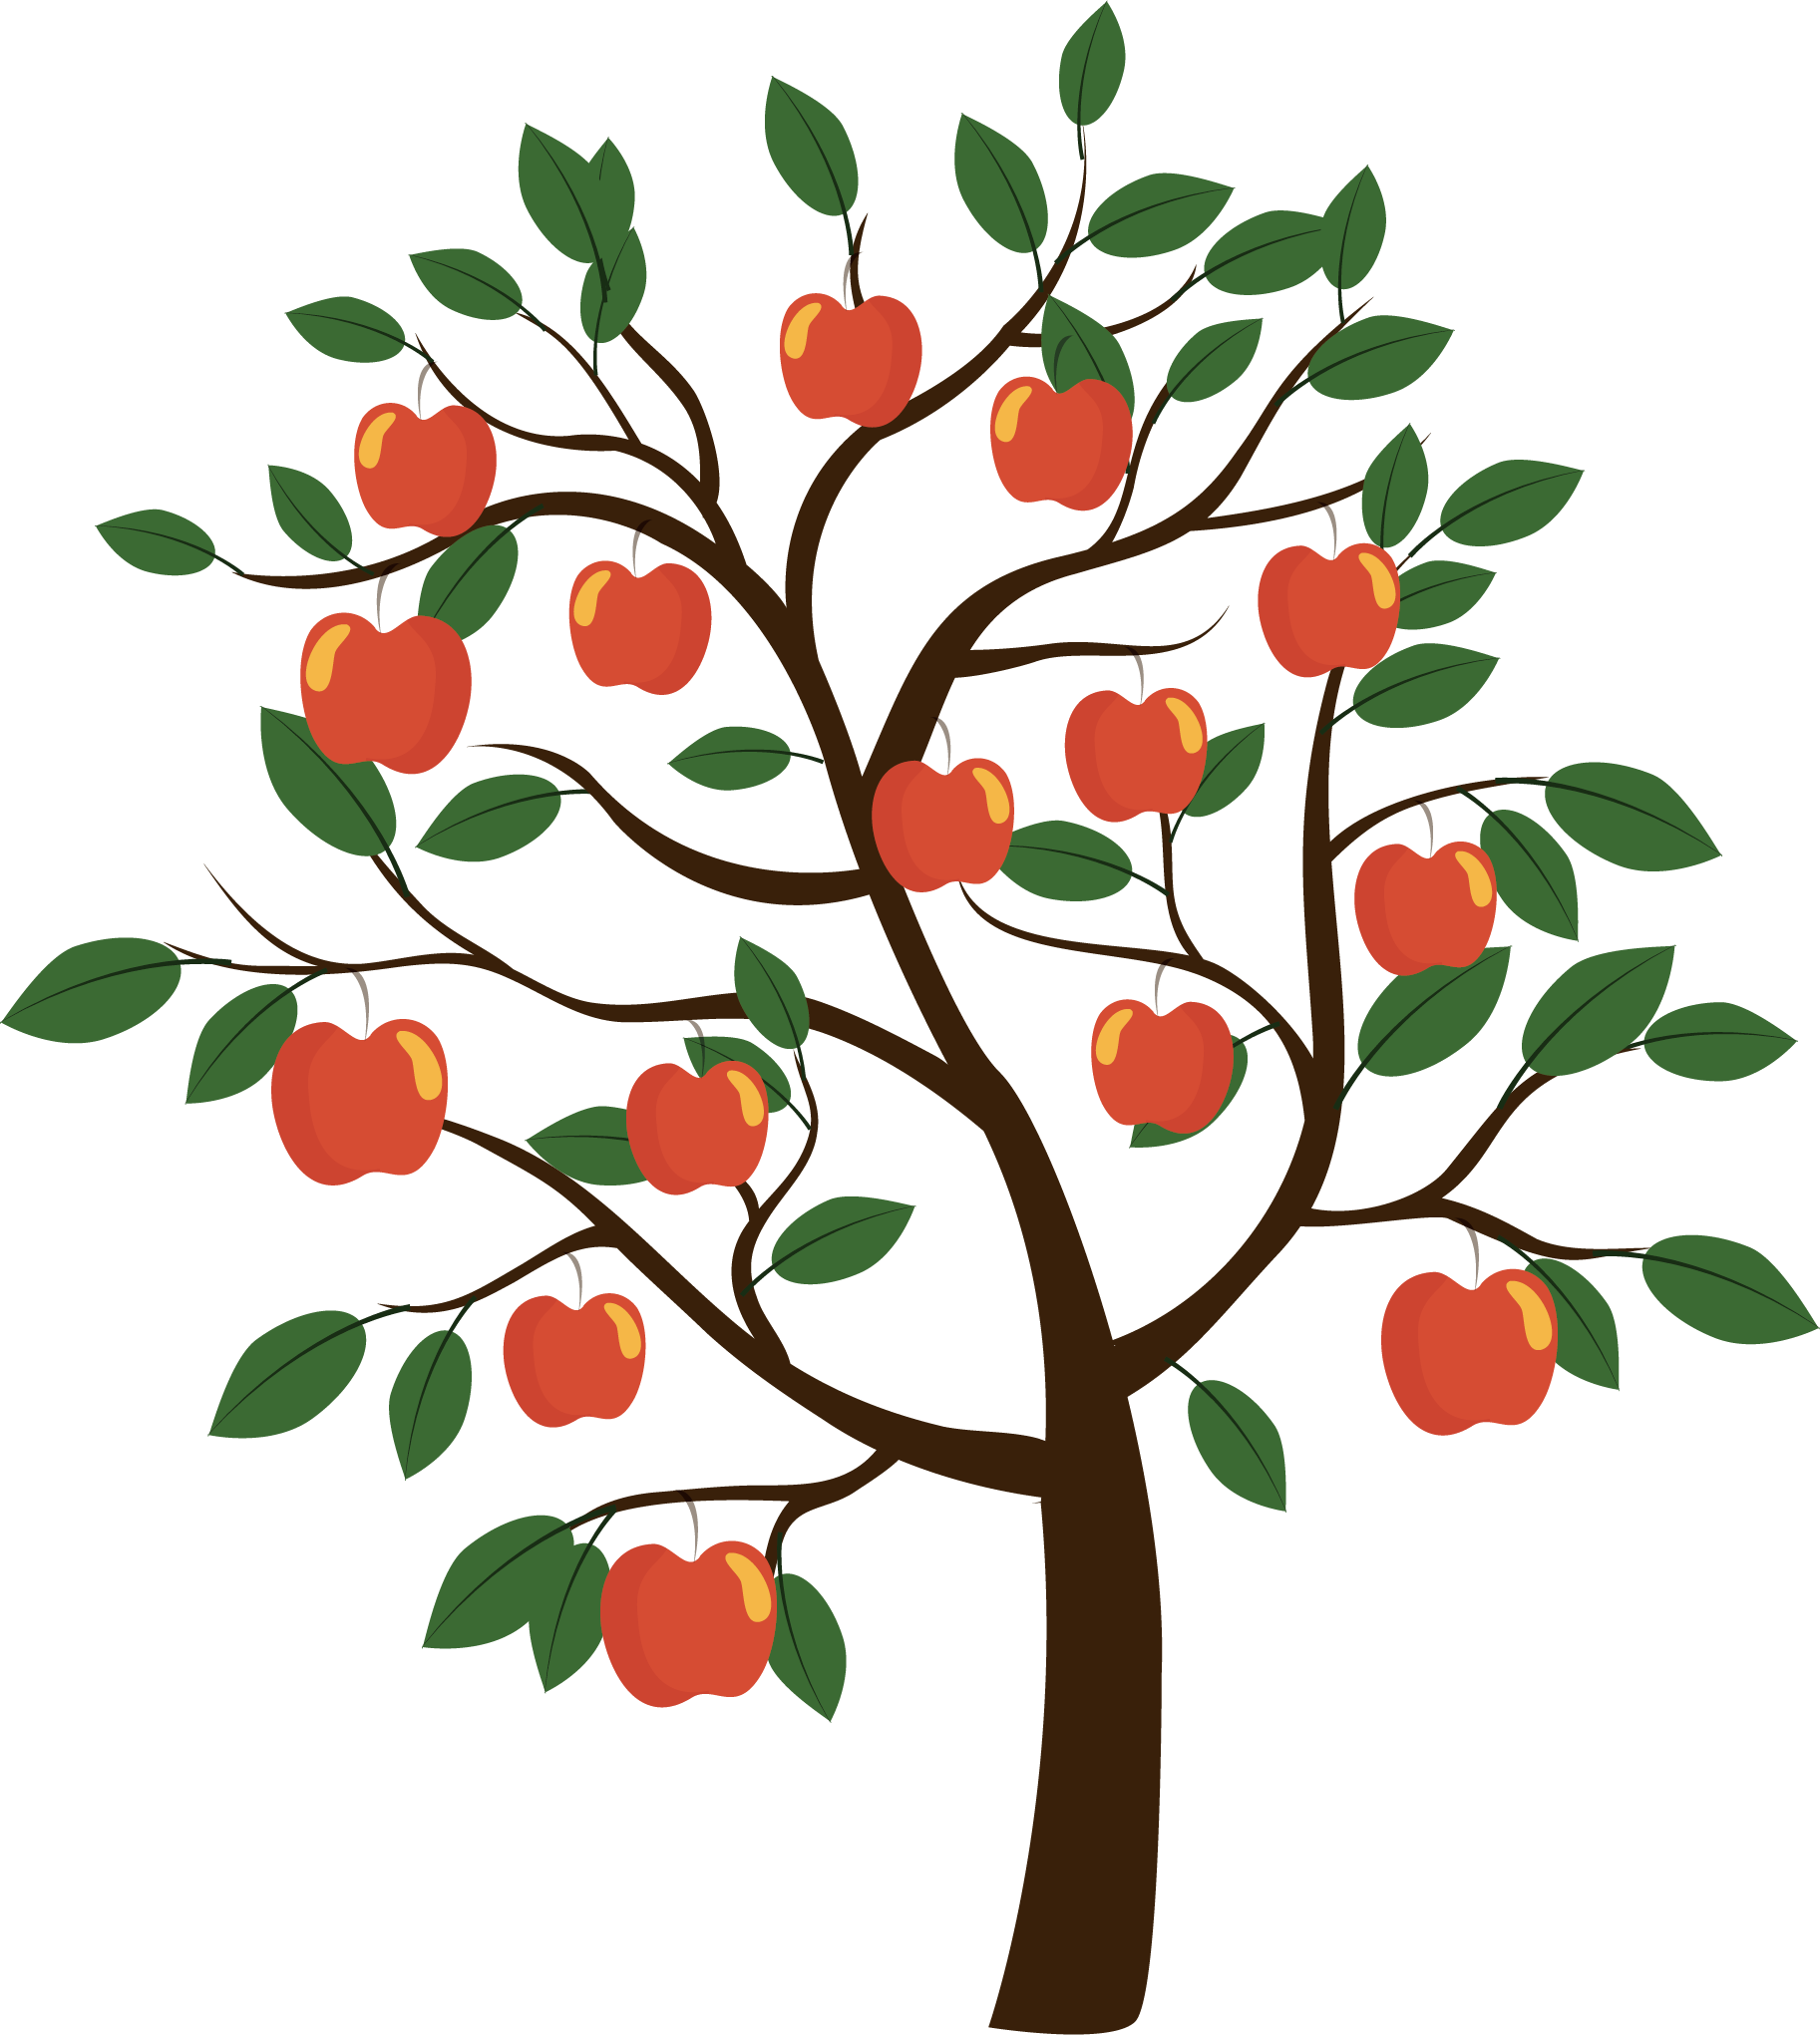 Apple tree leaves clipart vector transparent download Fruit tree Euclidean vector - Vector apple tree 1825*2041 transprent ... vector transparent download